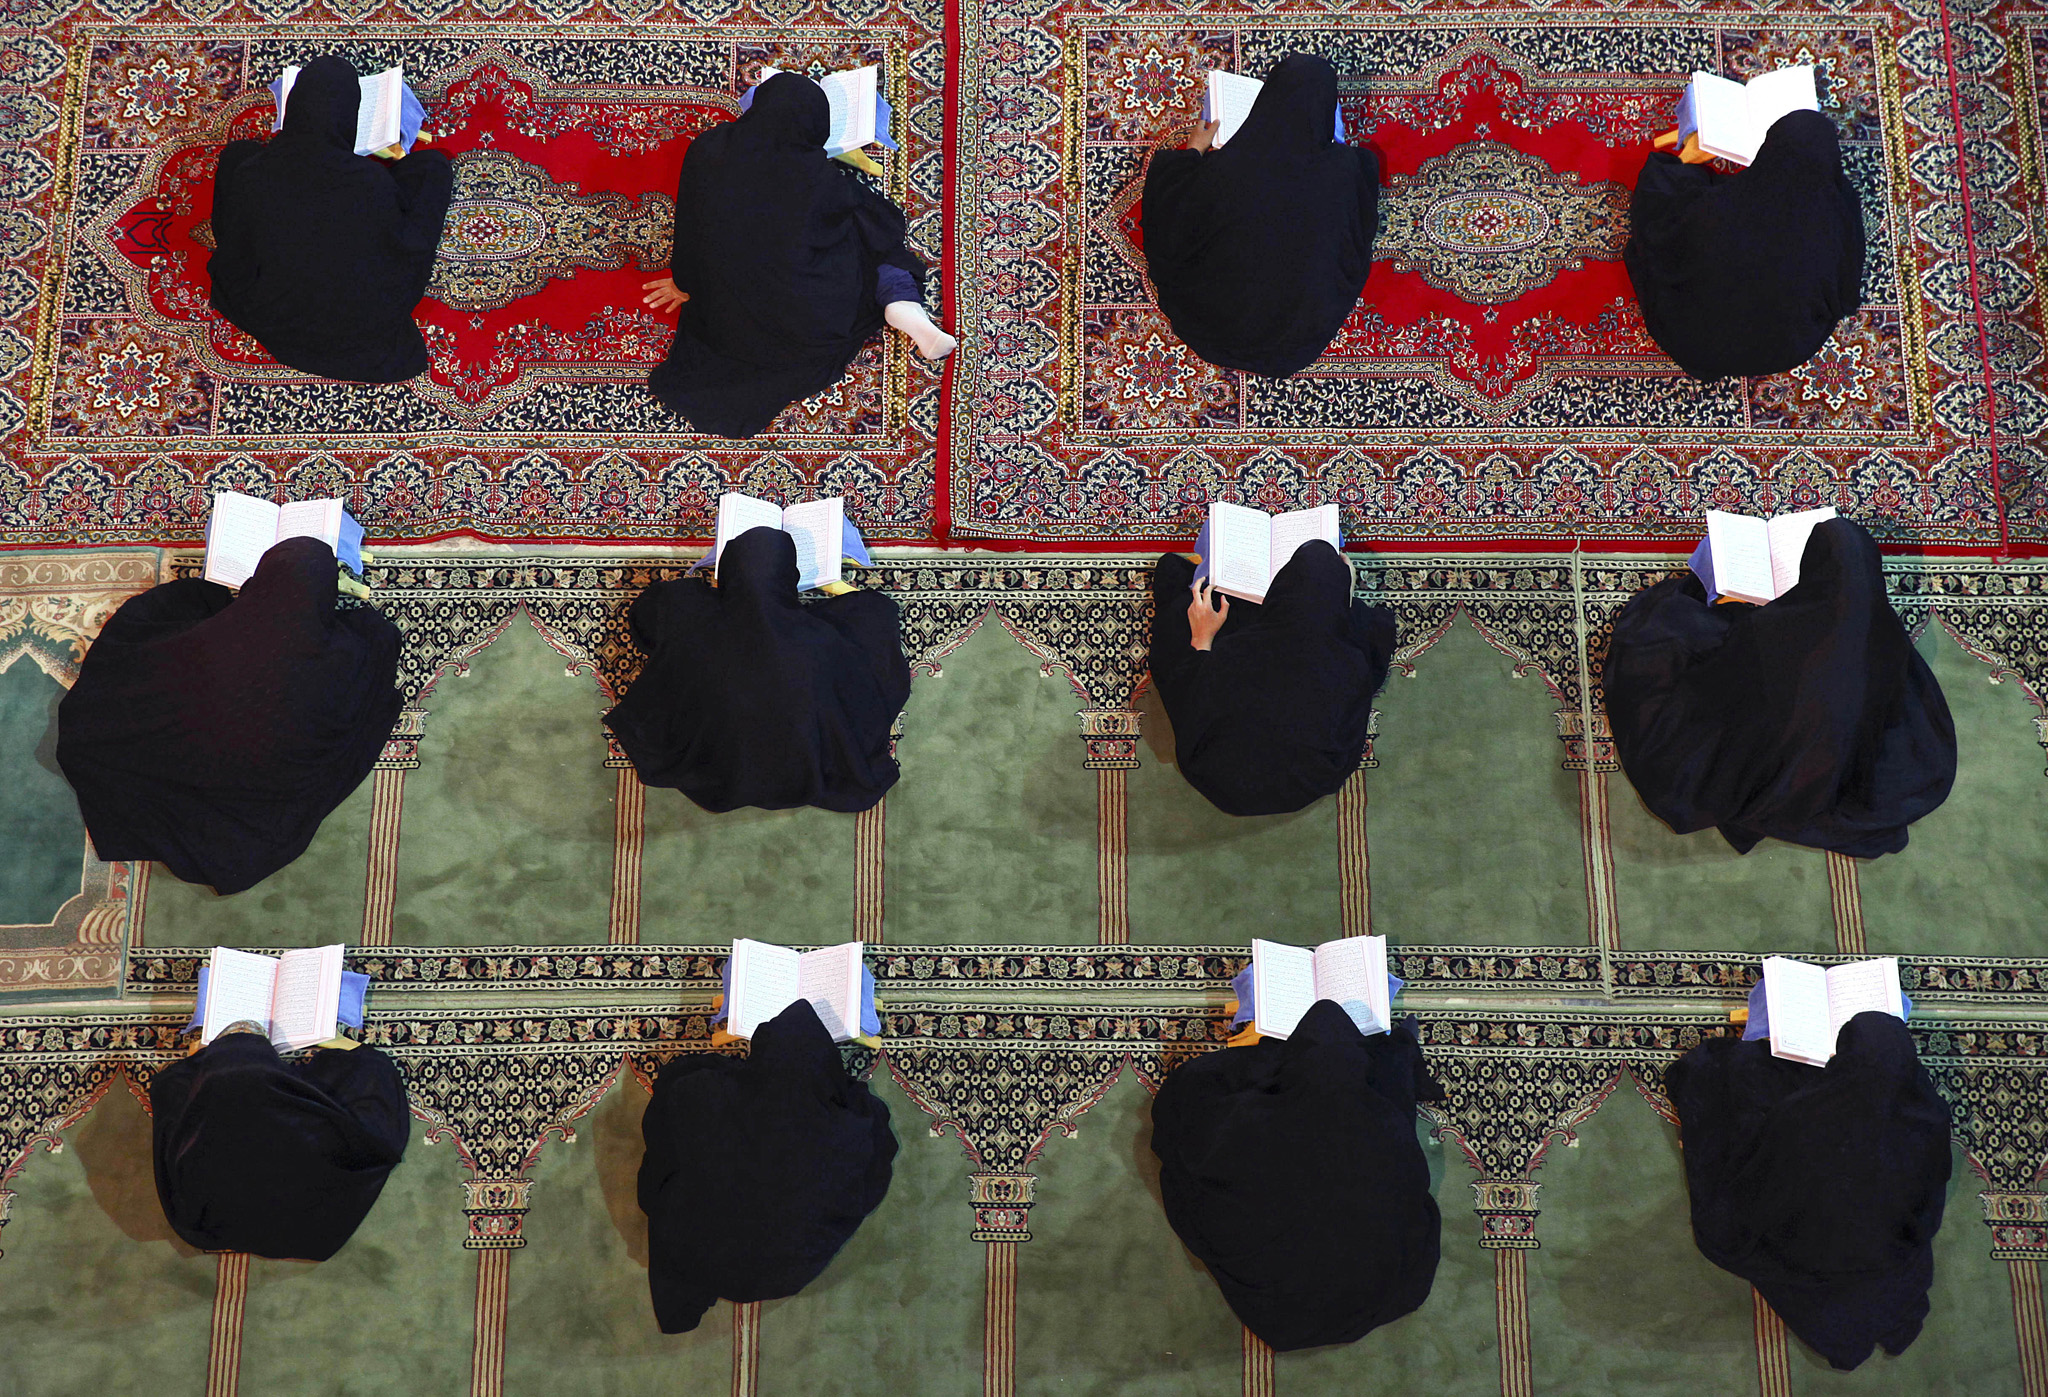 Iranian women recite verses of the Quran, Islam's holy book, during the Muslim holy fasting month of Ramadan at the shrine of Saint Mohammad Helal Ibn Ali in the city of Aran and Bidgol, some 140 miles (225 kilometers) south of the capital Tehran, Iran, Friday, July 11, 2014. Ramadan is a Muslim holy month of fasting during which Muslims abstain from food, drink and other pleasures from sunrise to sunset. For believers, Ramadan is meant to be a time of reflection and worship, remembering the hardships of others and being charitable. (AP Photo/Vahid Salemi)